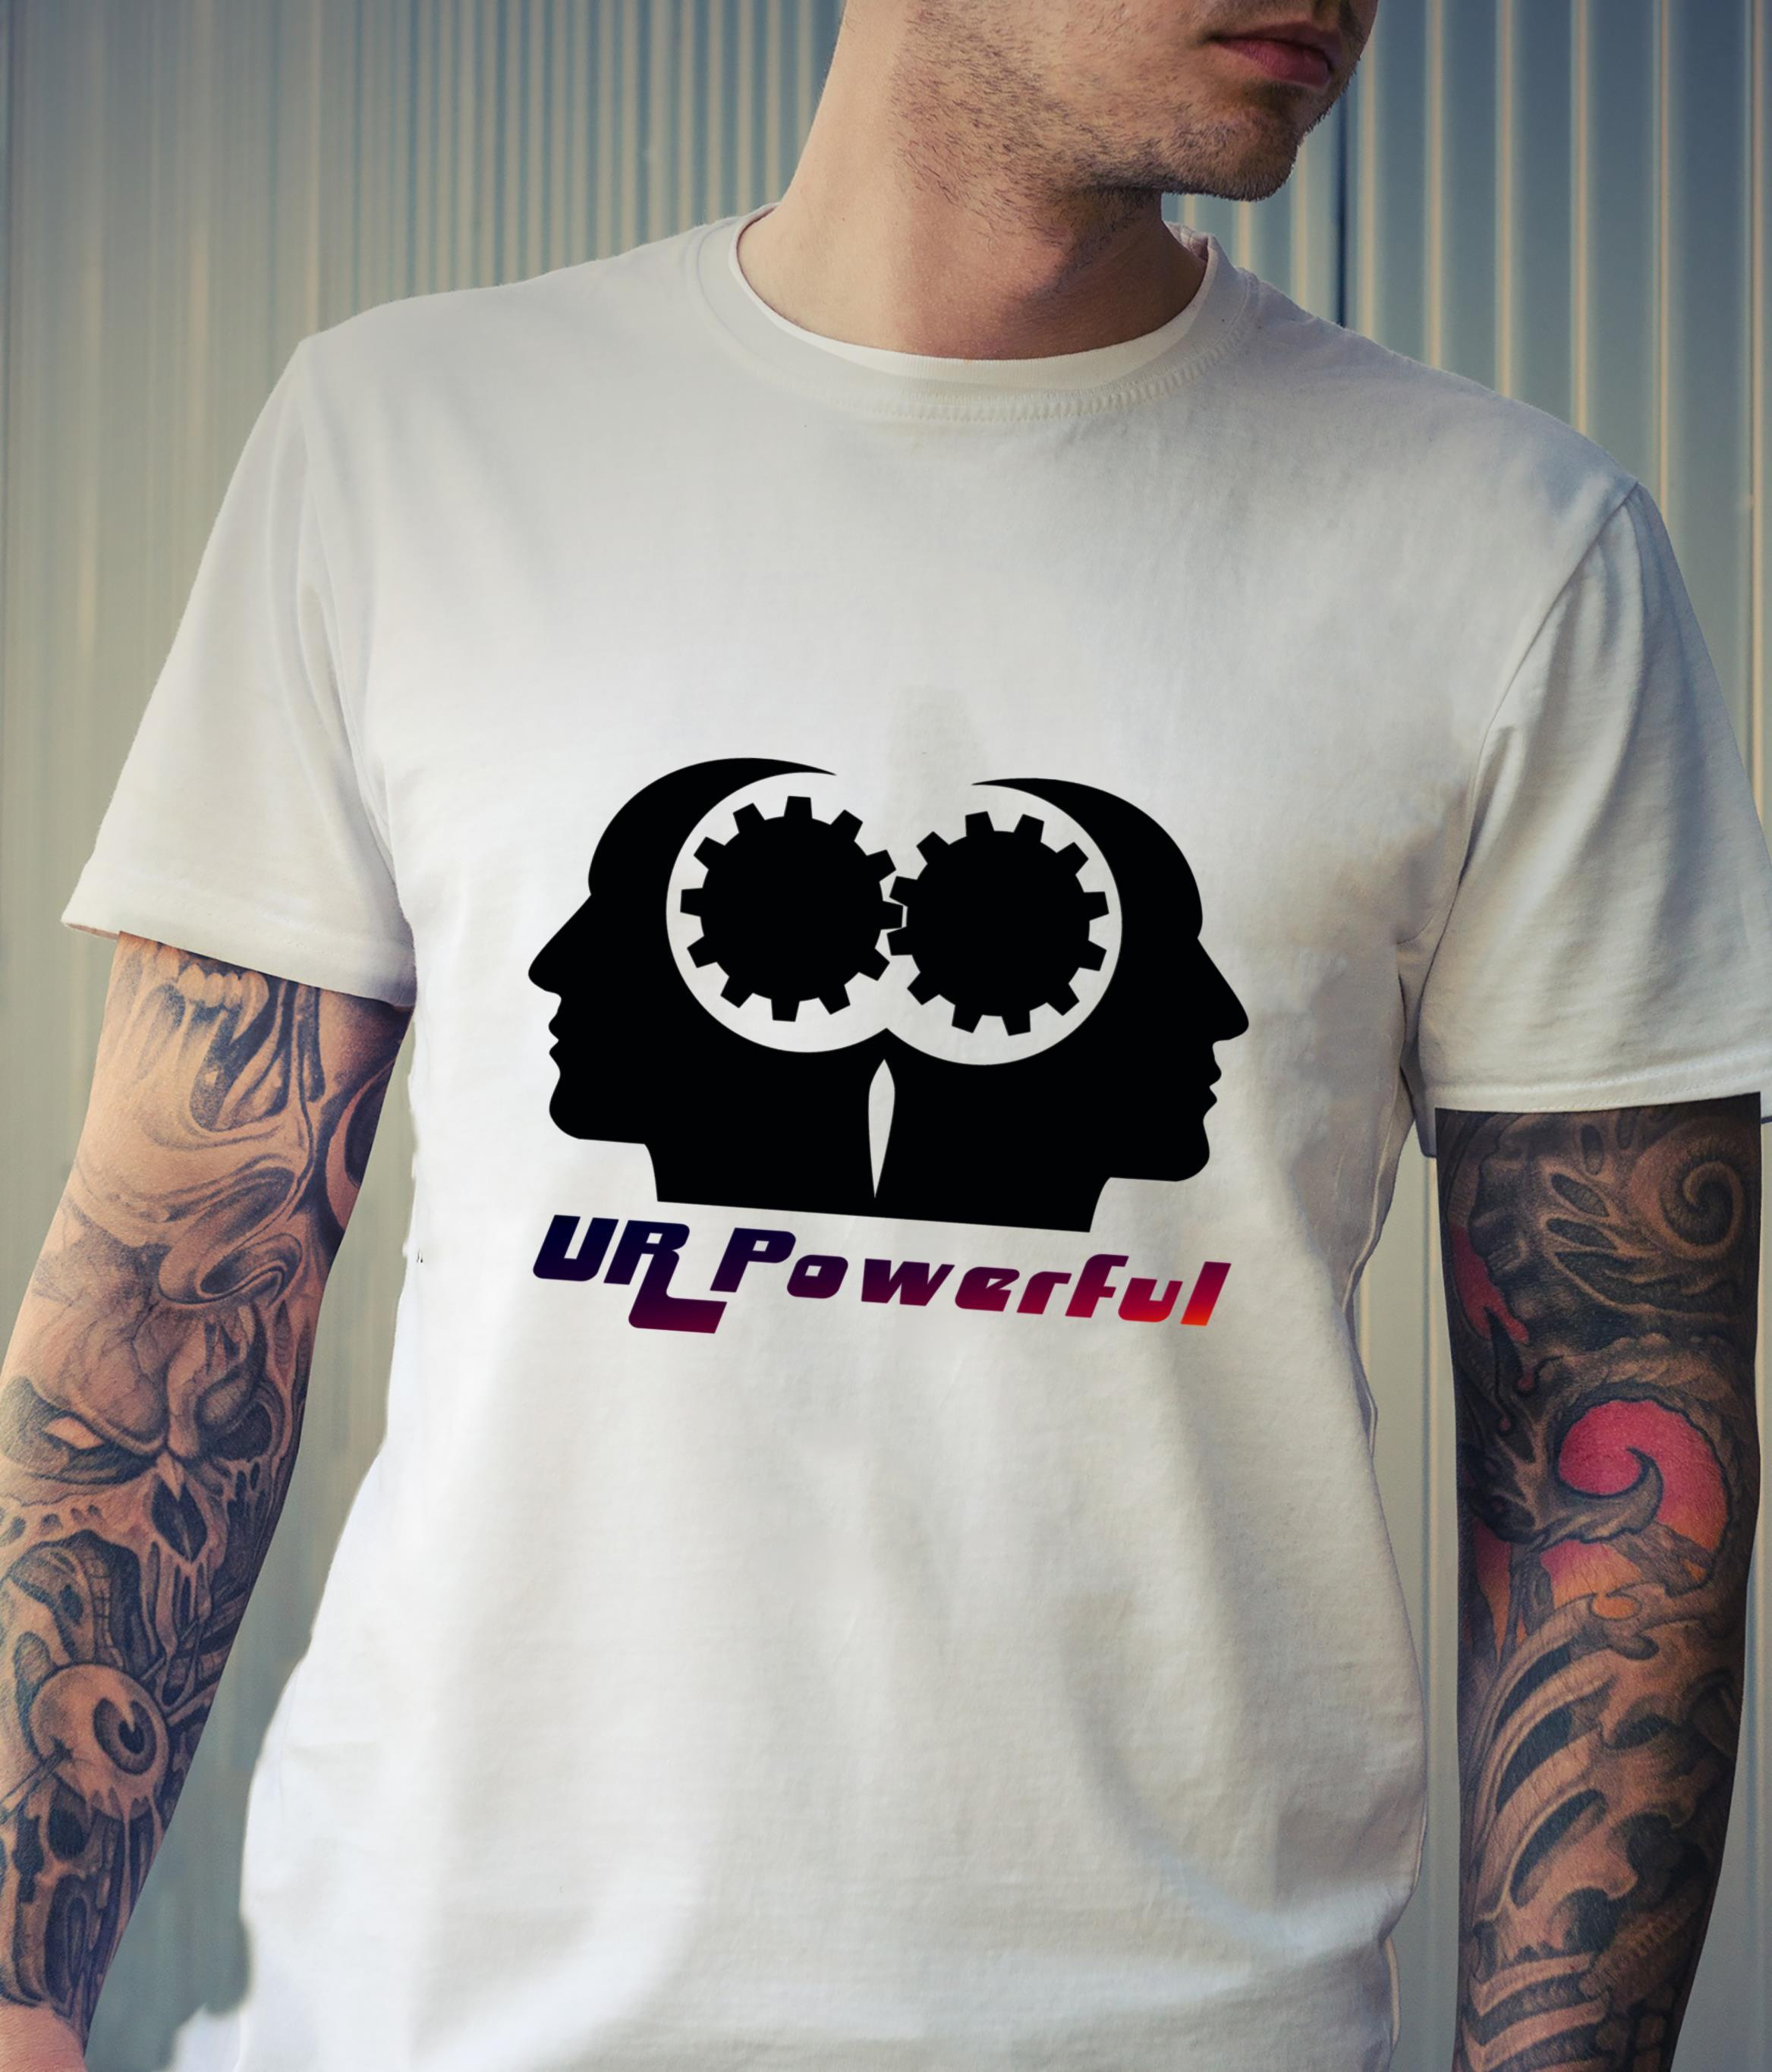 UR Powerful You Are Powerful Inspirational Shirt